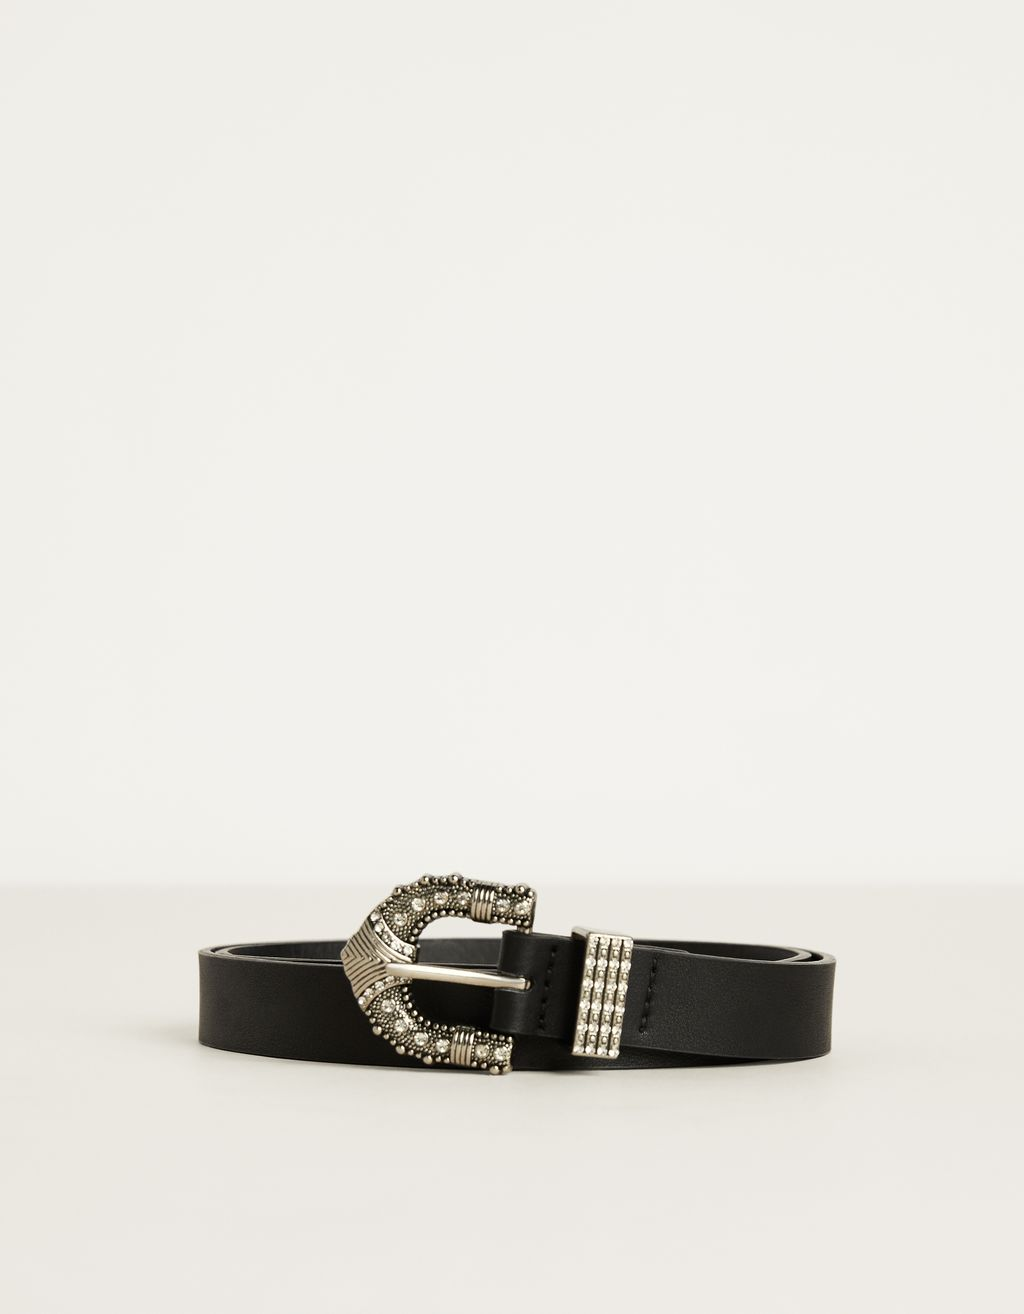 Cowboy belt with rhinestone details